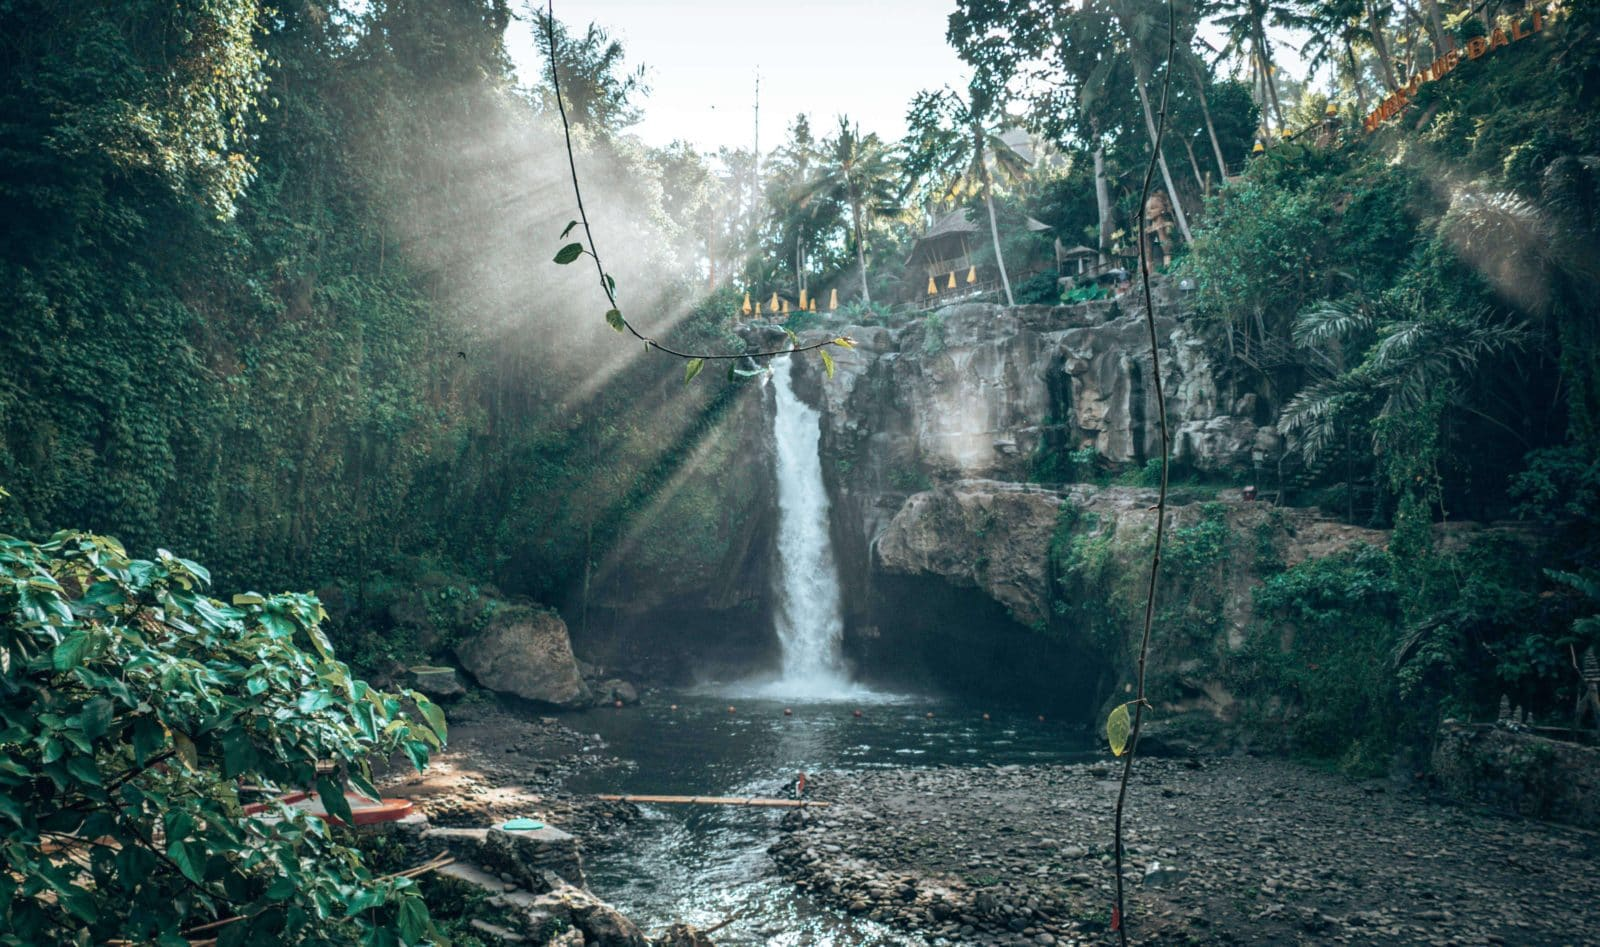 Ubud Waterfall - Tegenungan Waterfall